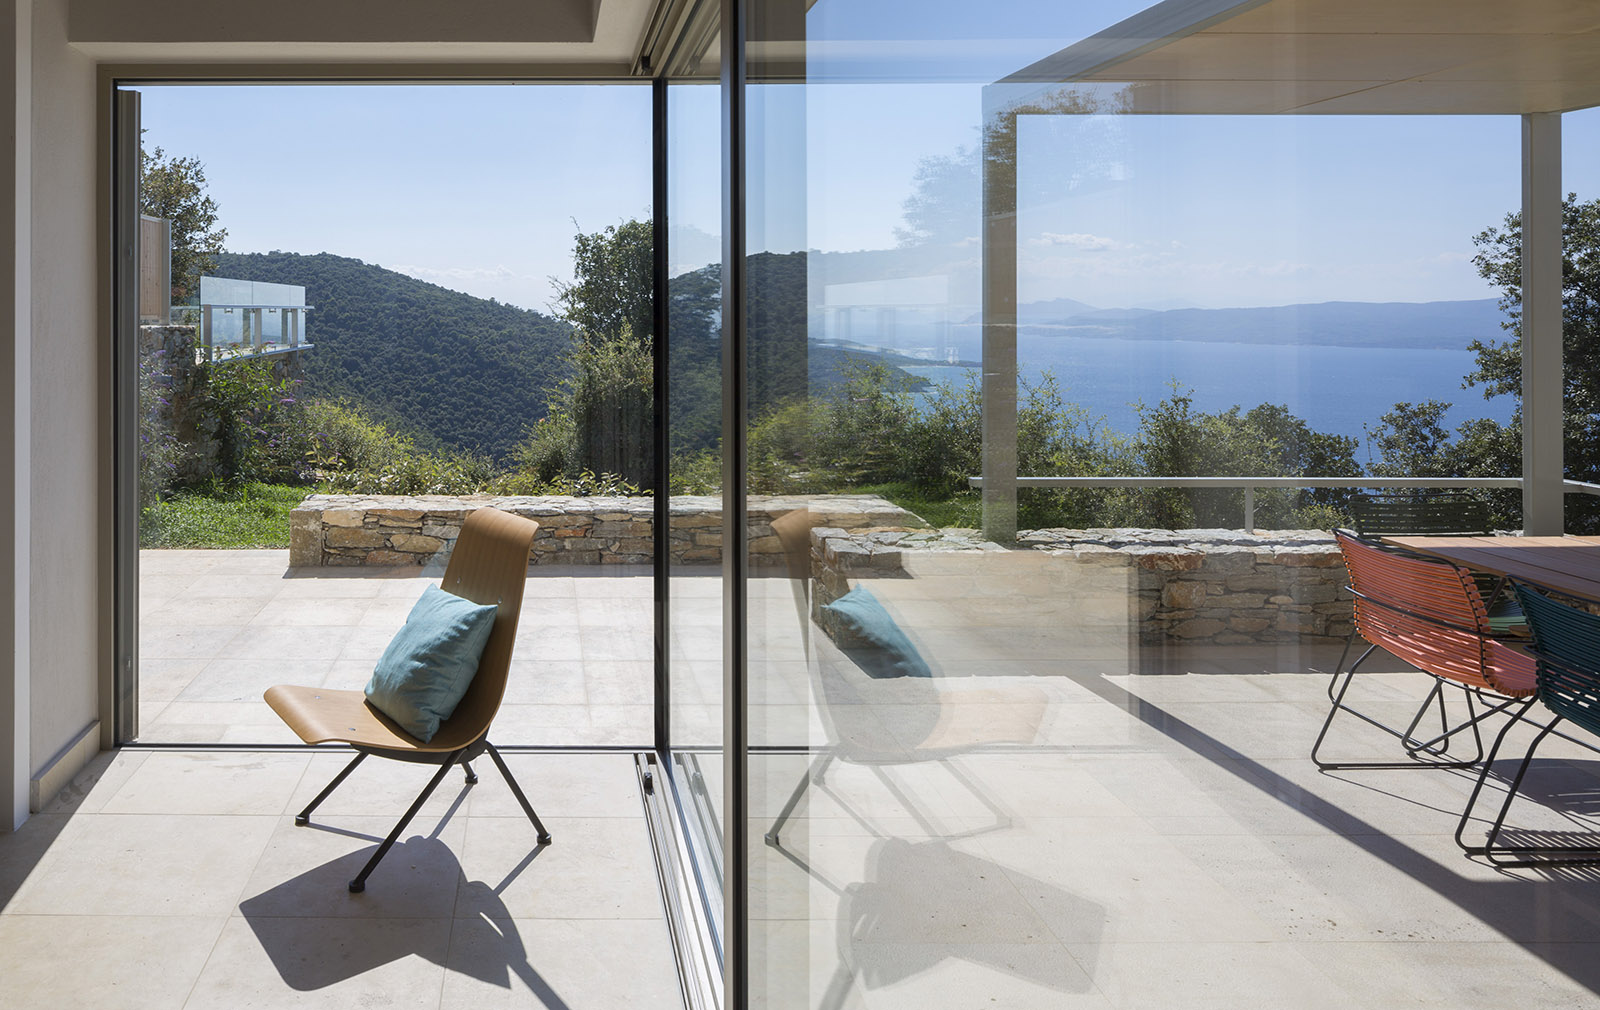 Greek Holiday Home to Rent - Kechria Villas by architect Nikitas Hatzimichalis